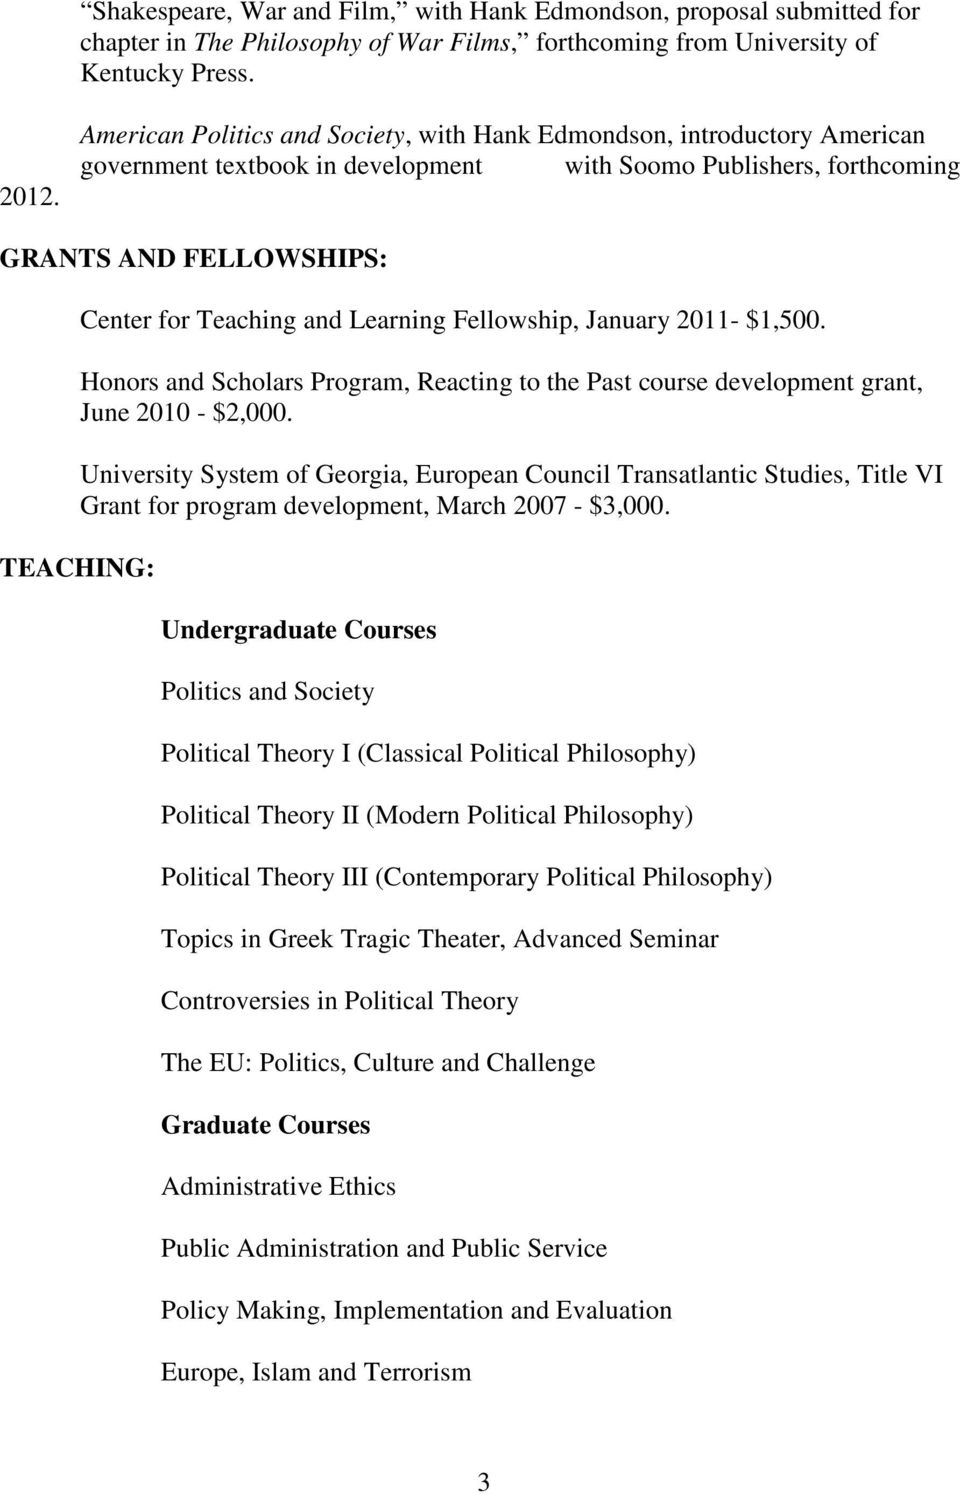 Learning Fellowship, January 2011- $1,500. Honors and Scholars Program, Reacting to the Past course development grant, June 2010 - $2,000.